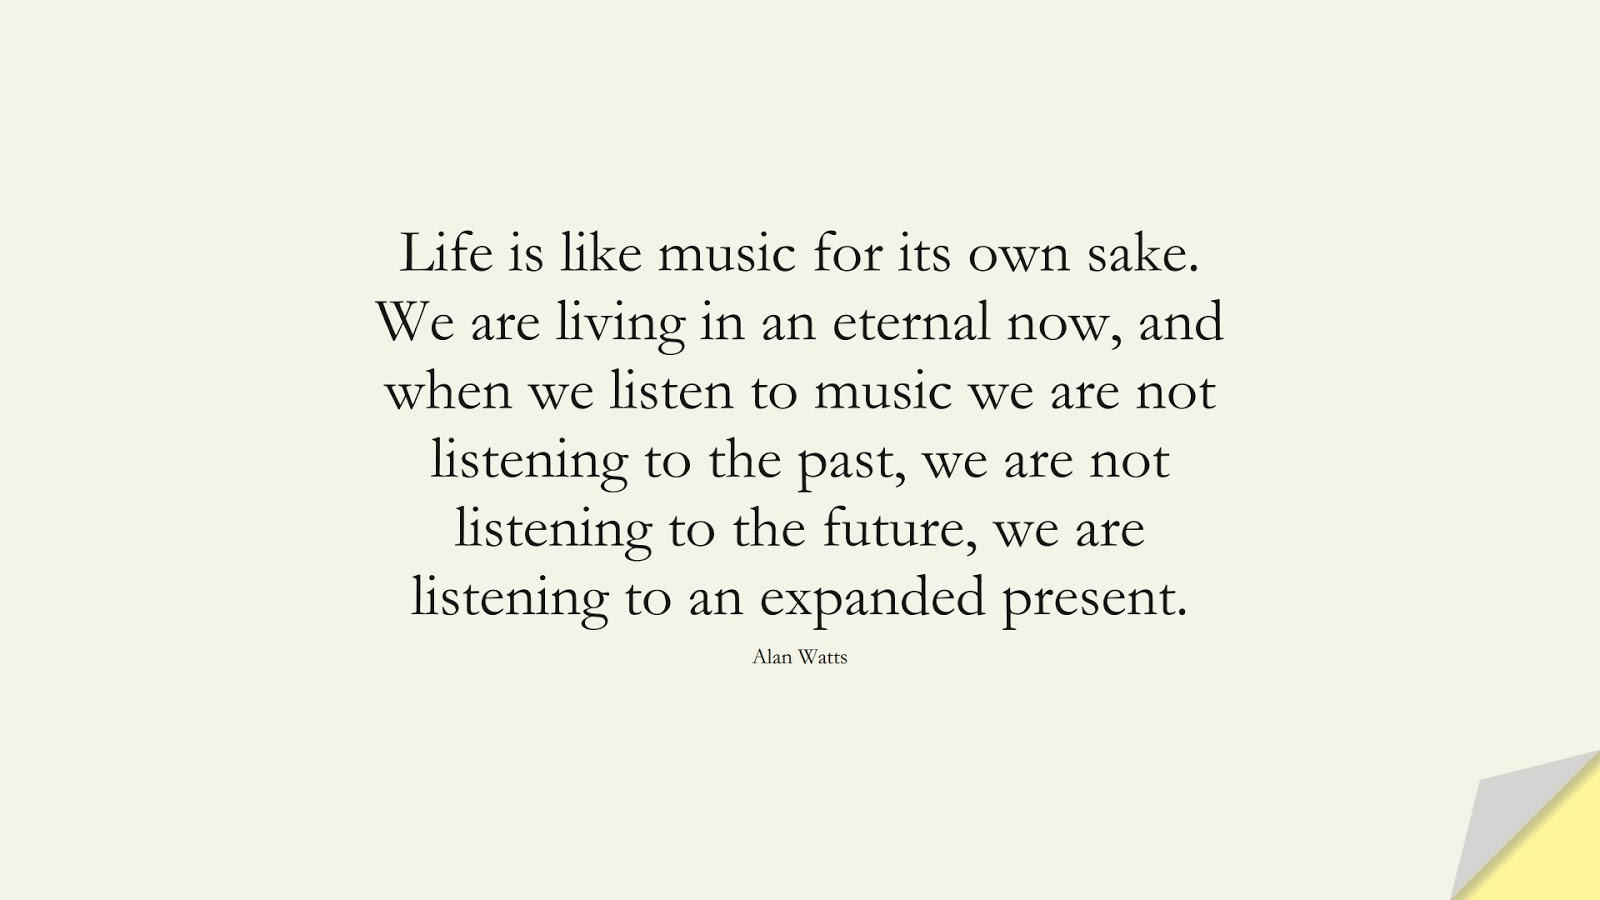 Life is like music for its own sake. We are living in an eternal now, and when we listen to music we are not listening to the past, we are not listening to the future, we are listening to an expanded present. (Alan Watts);  #LifeQuotes